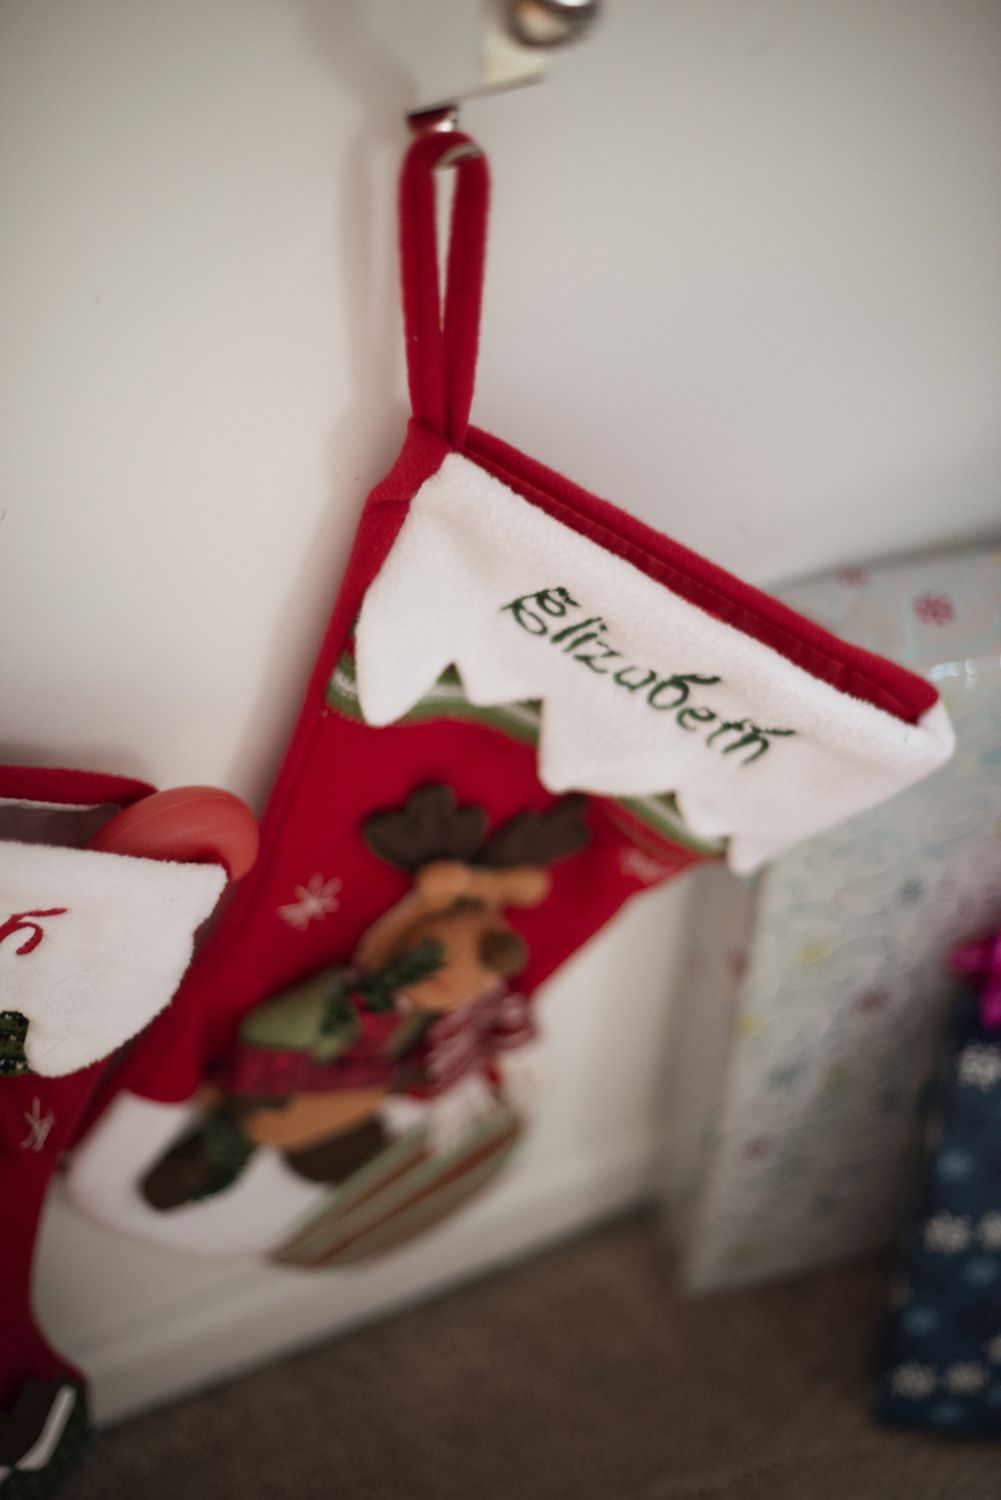 Newborn stocking for baby's first Christmas